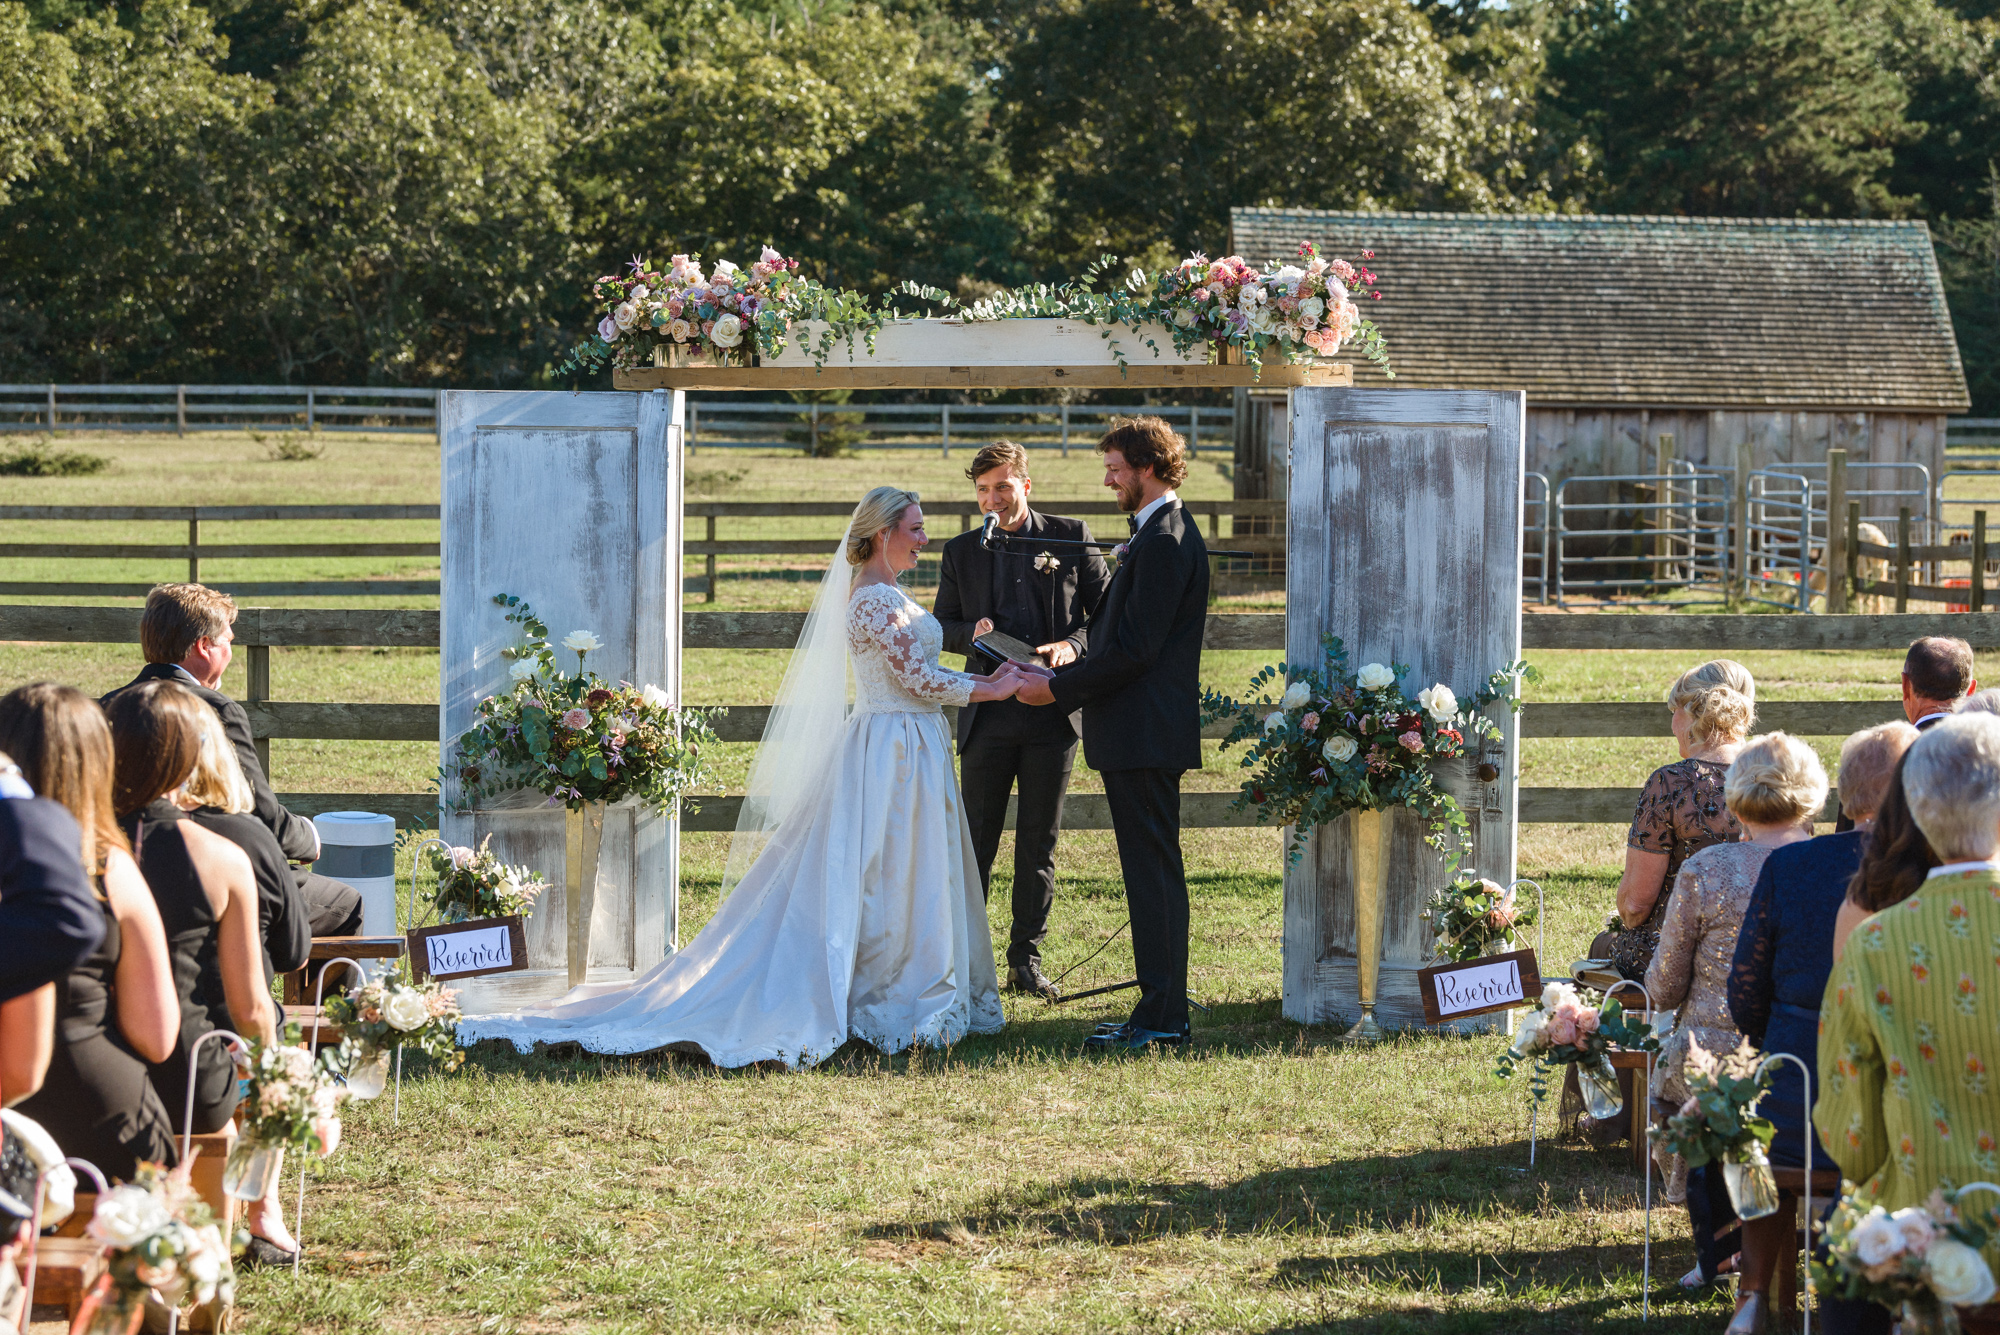 A wedding ceremony at Island Alpaca Company photo by David Welch Photography